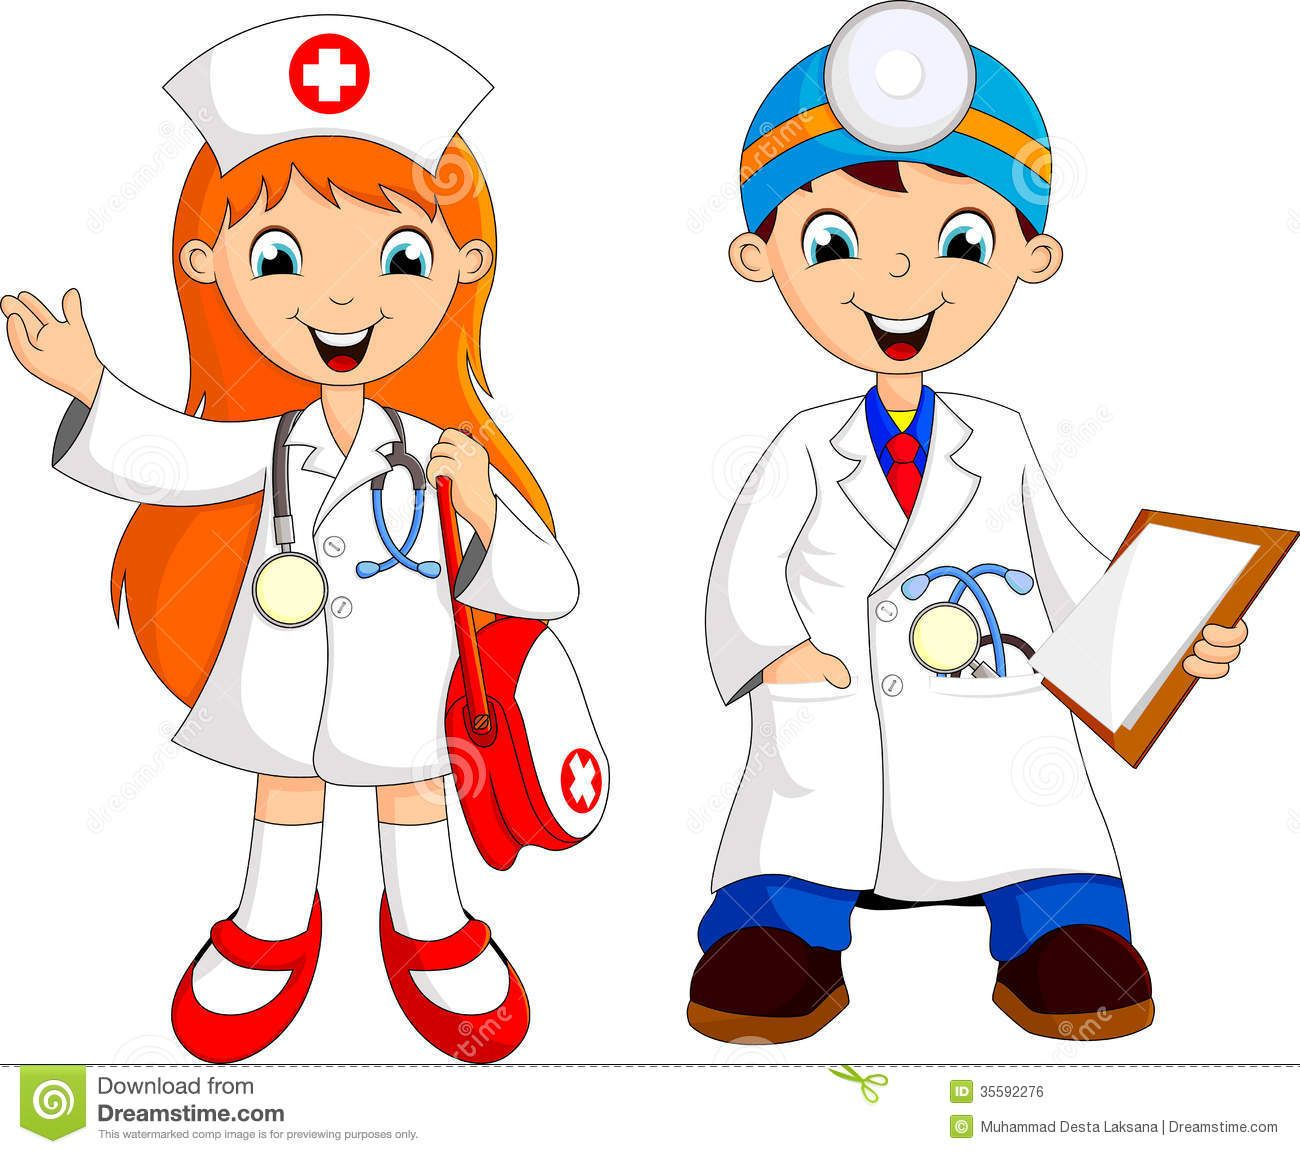 Image result for kid as a doctor graphic